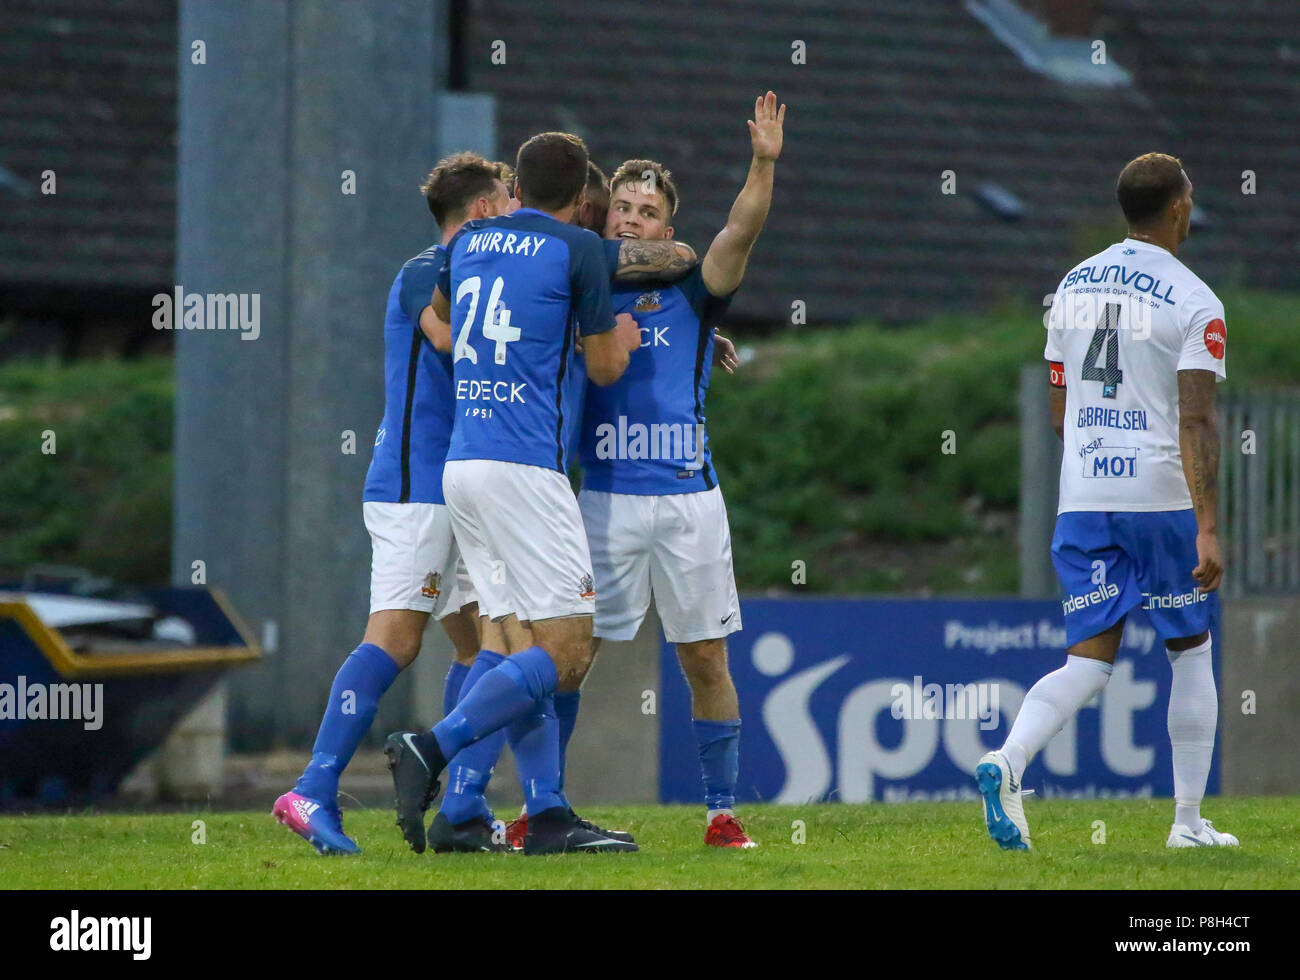 Uefa Europa League First Qualifying Round Glenavon V Molde Josh Daniels Celebrates His Winner For Glenavon Credit David Hunter Alamy Live News